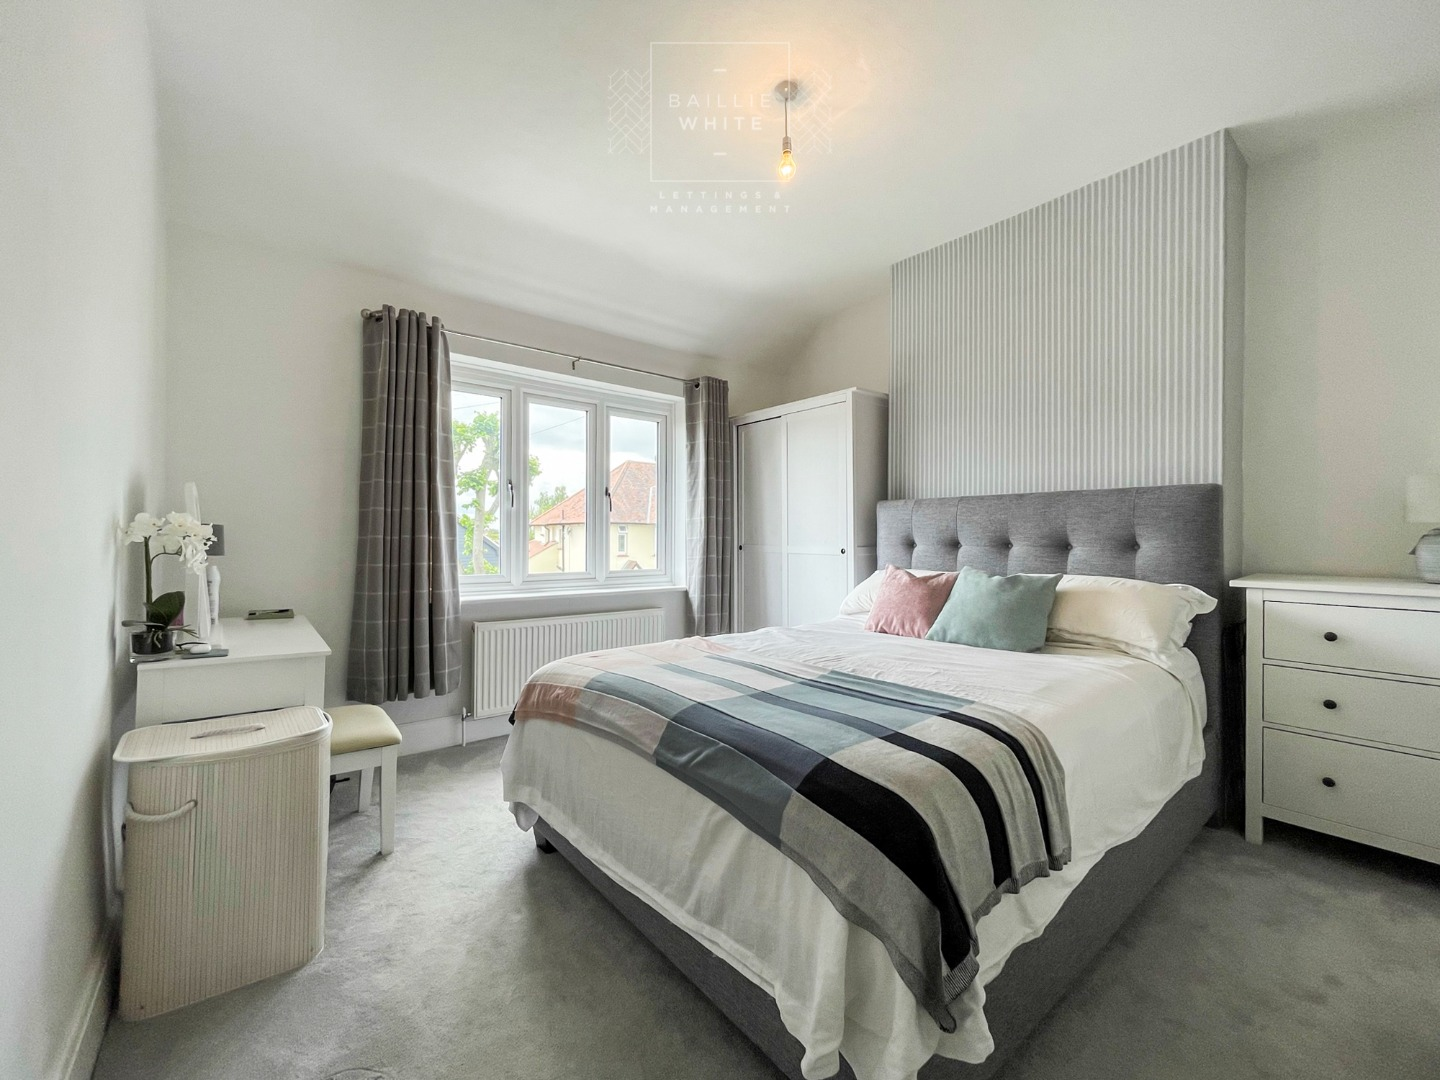 3 bed apartment to rent in Hadleigh Road, Leigh on Sea 6